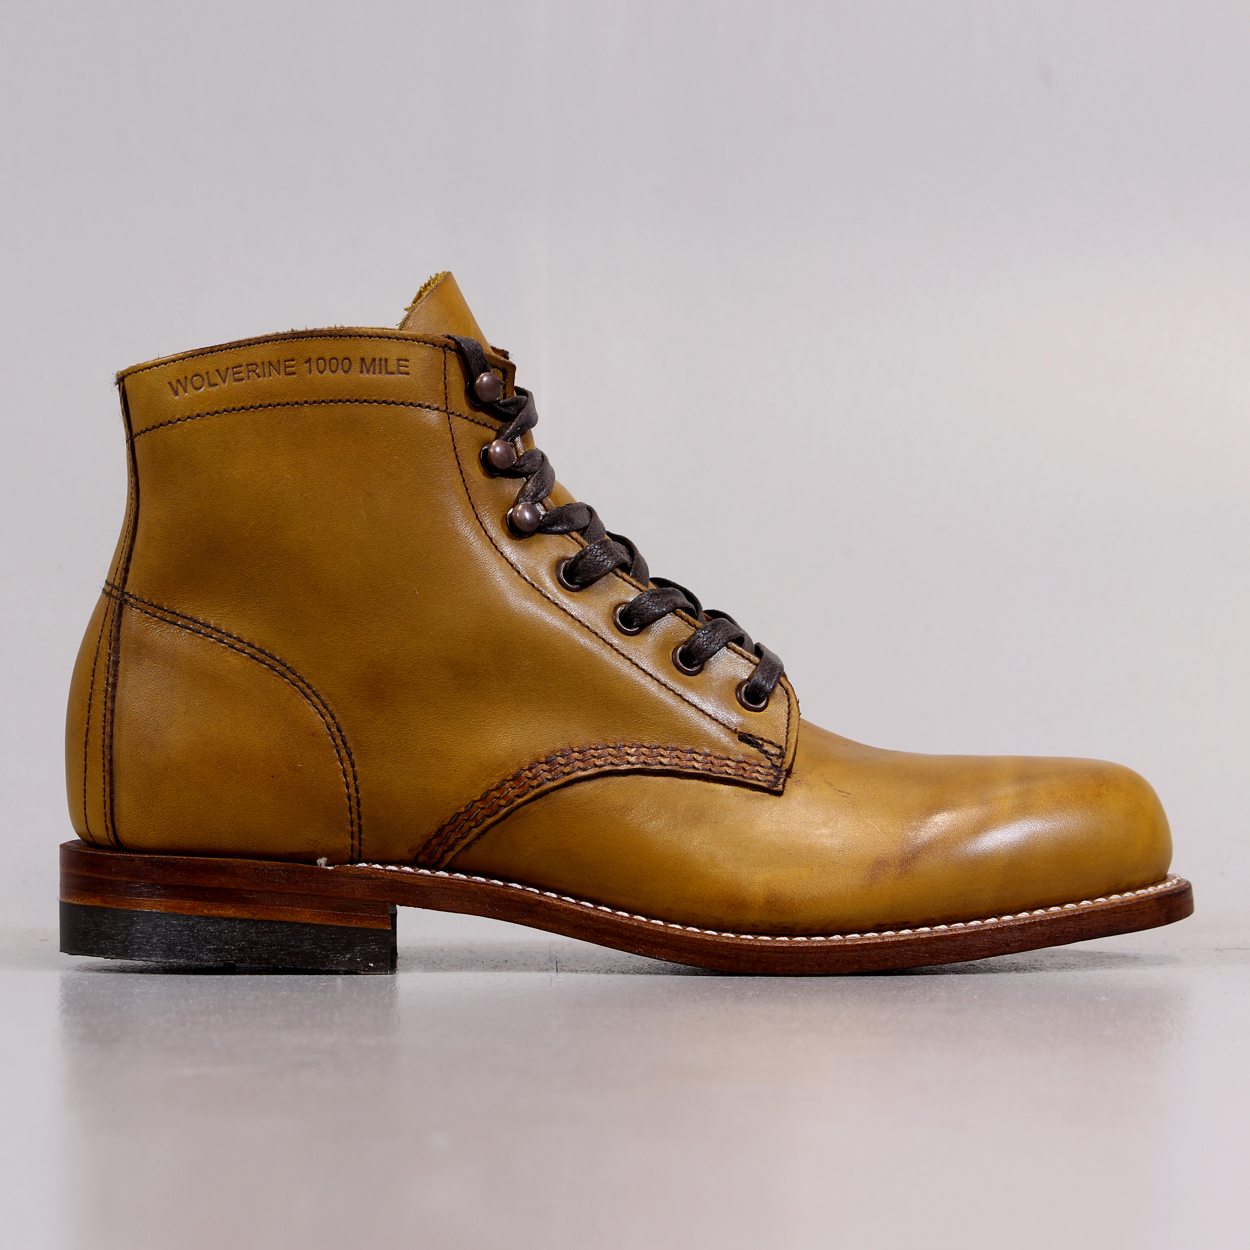 04a884a3e59 Wolverine Mens 1000 Mile Boots Tan D Outdoor Country Shoes Life £224.25